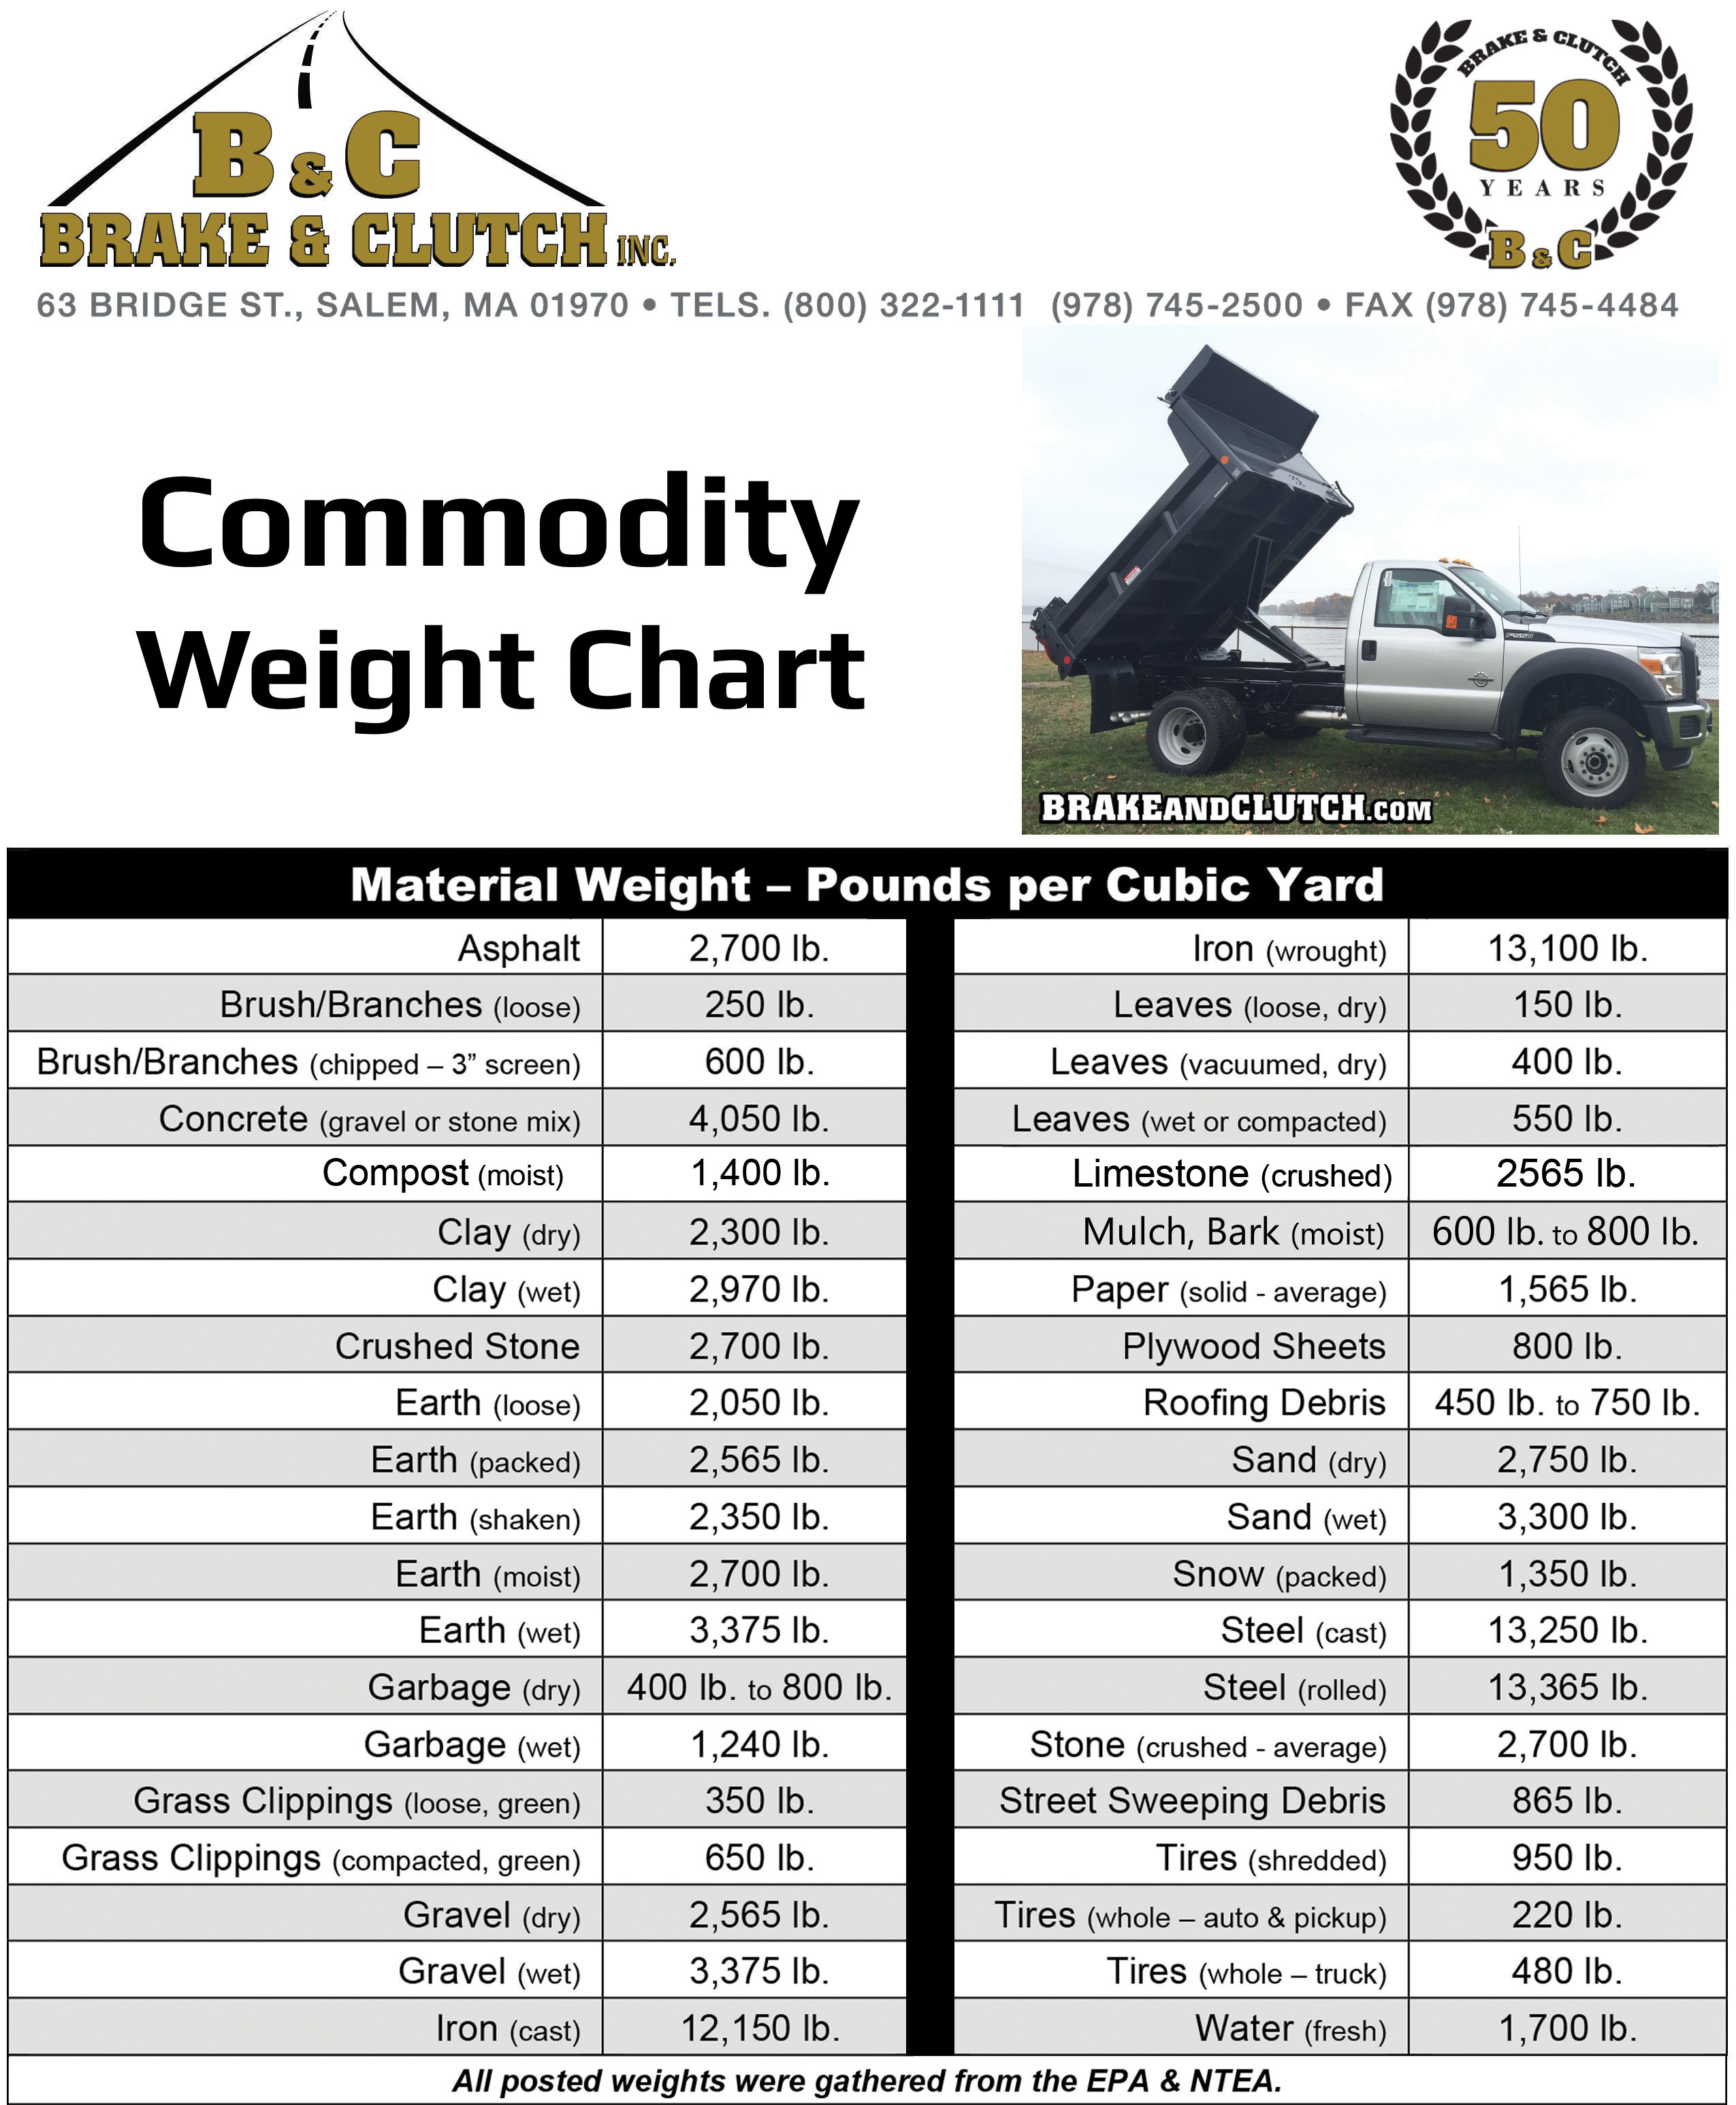 Commodity Chart Brake And Clutch Inc Brake And Clutch Inc